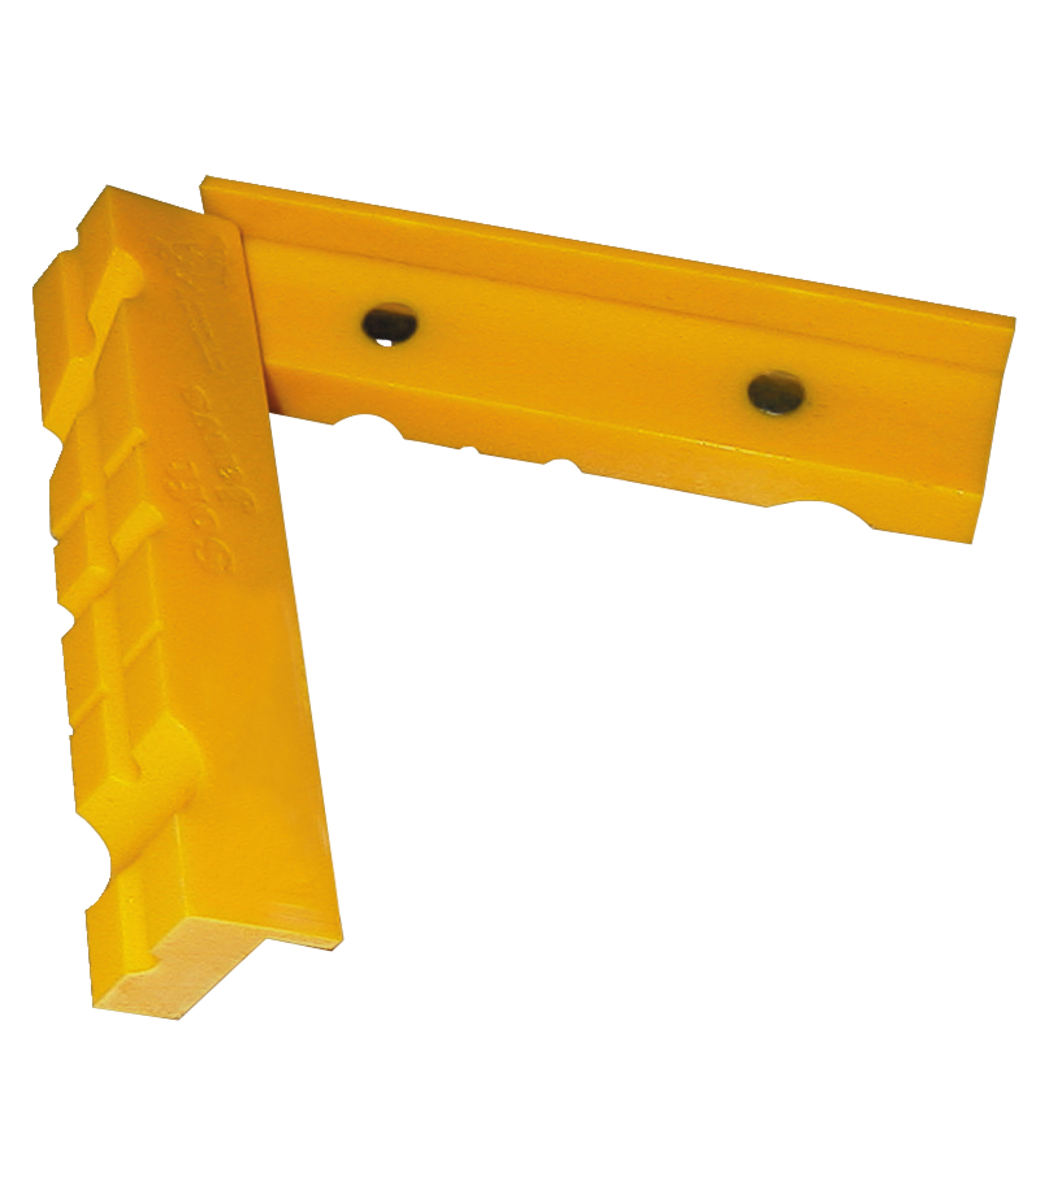 MULTI-GRIP VISE JAWS